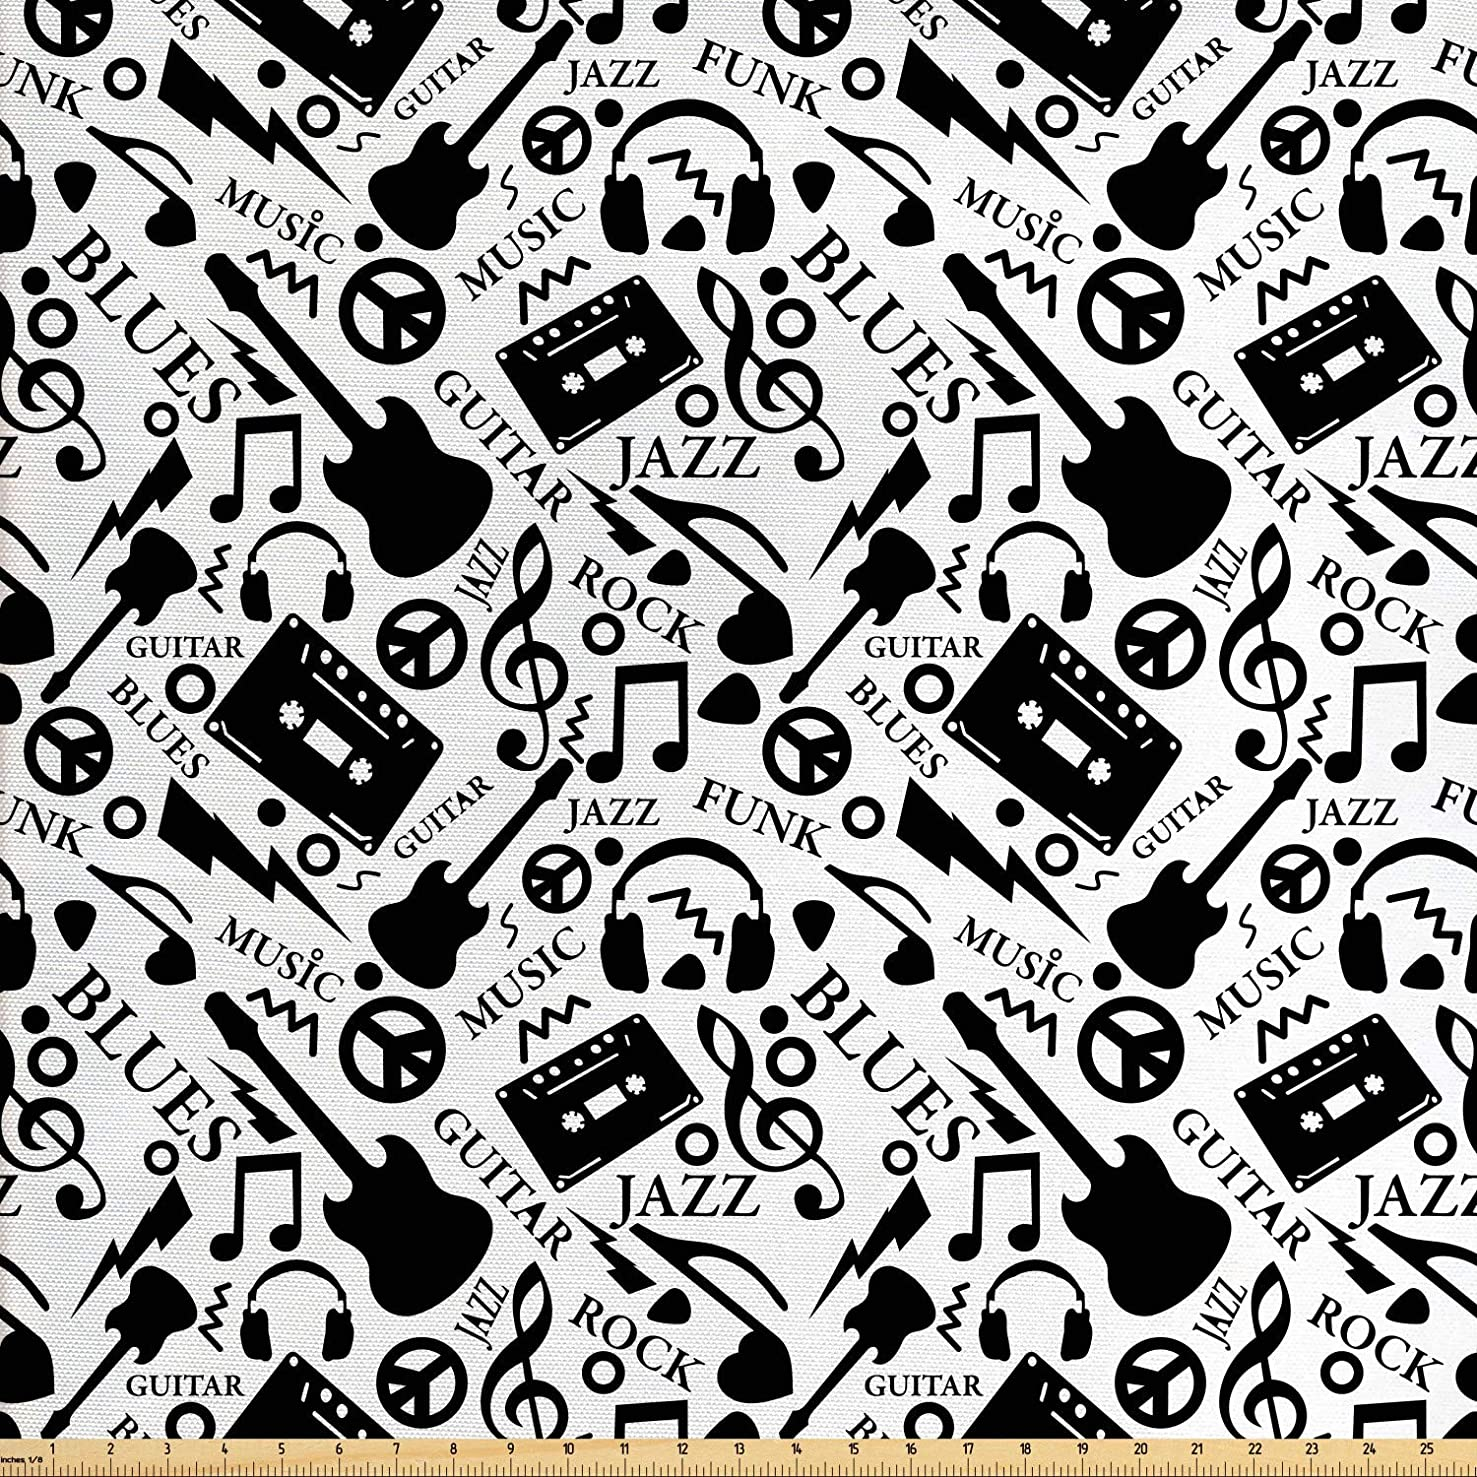 Ambesonne Music Fabric by The Yard, Blues Jazz Punk Rock Various Type of Folk Indie Rap Reggae Peace Sign Sing Artwork, Decorative Fabric for Upholstery and Home Accents, 1 Yard, Black White